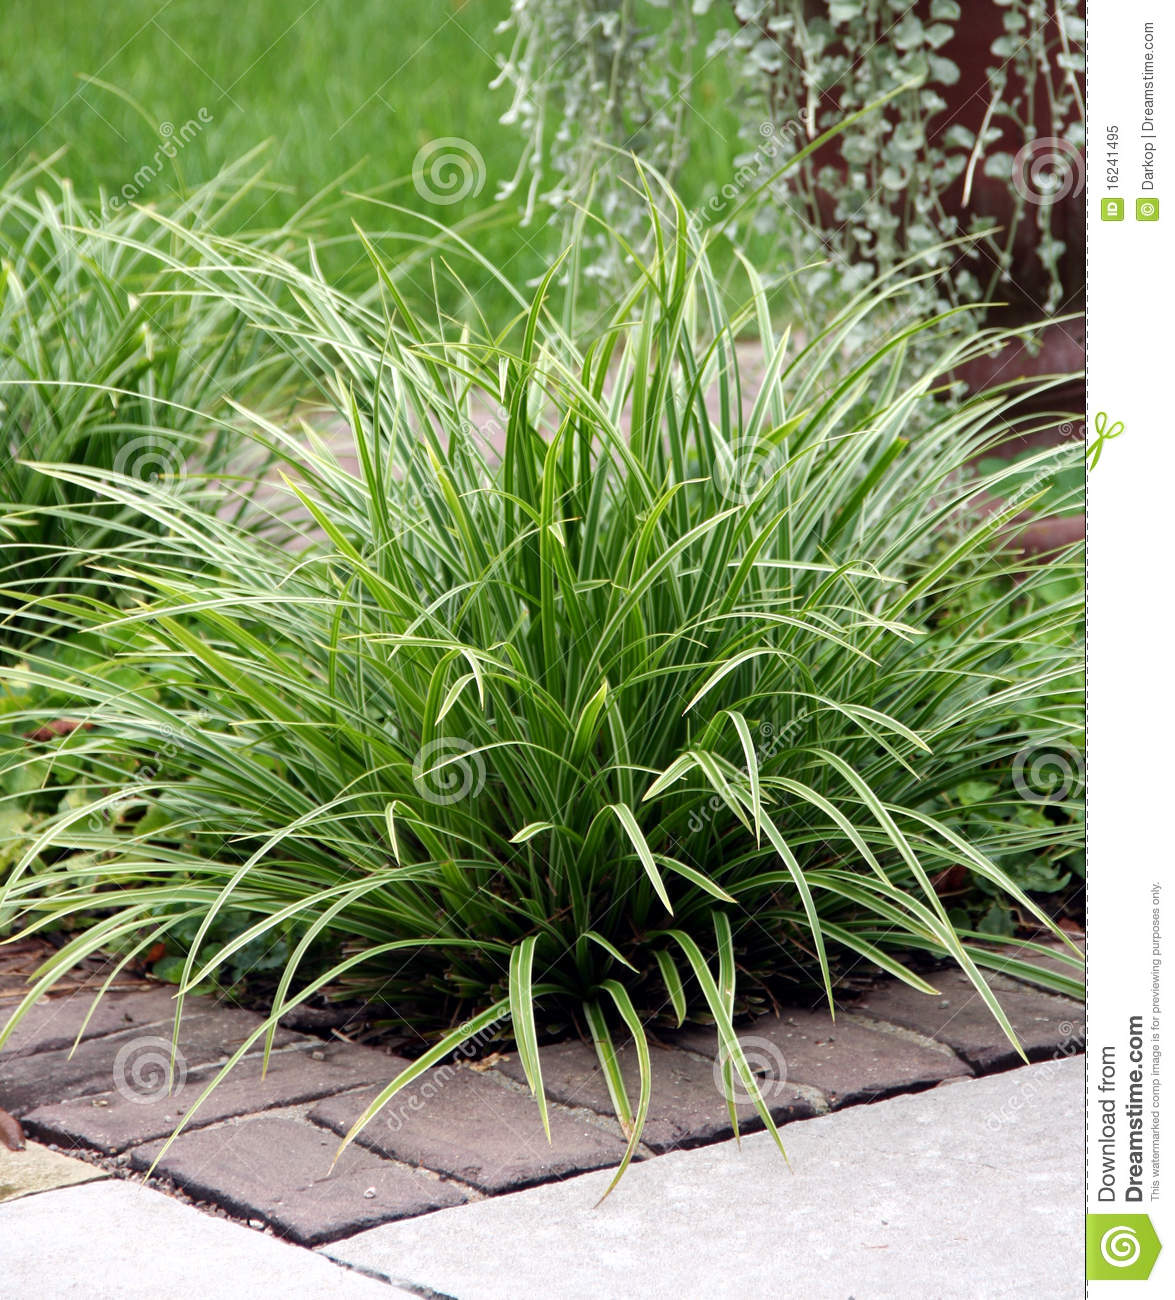 Perennial Grass Stock Image Image Of White Shrumb Perennial